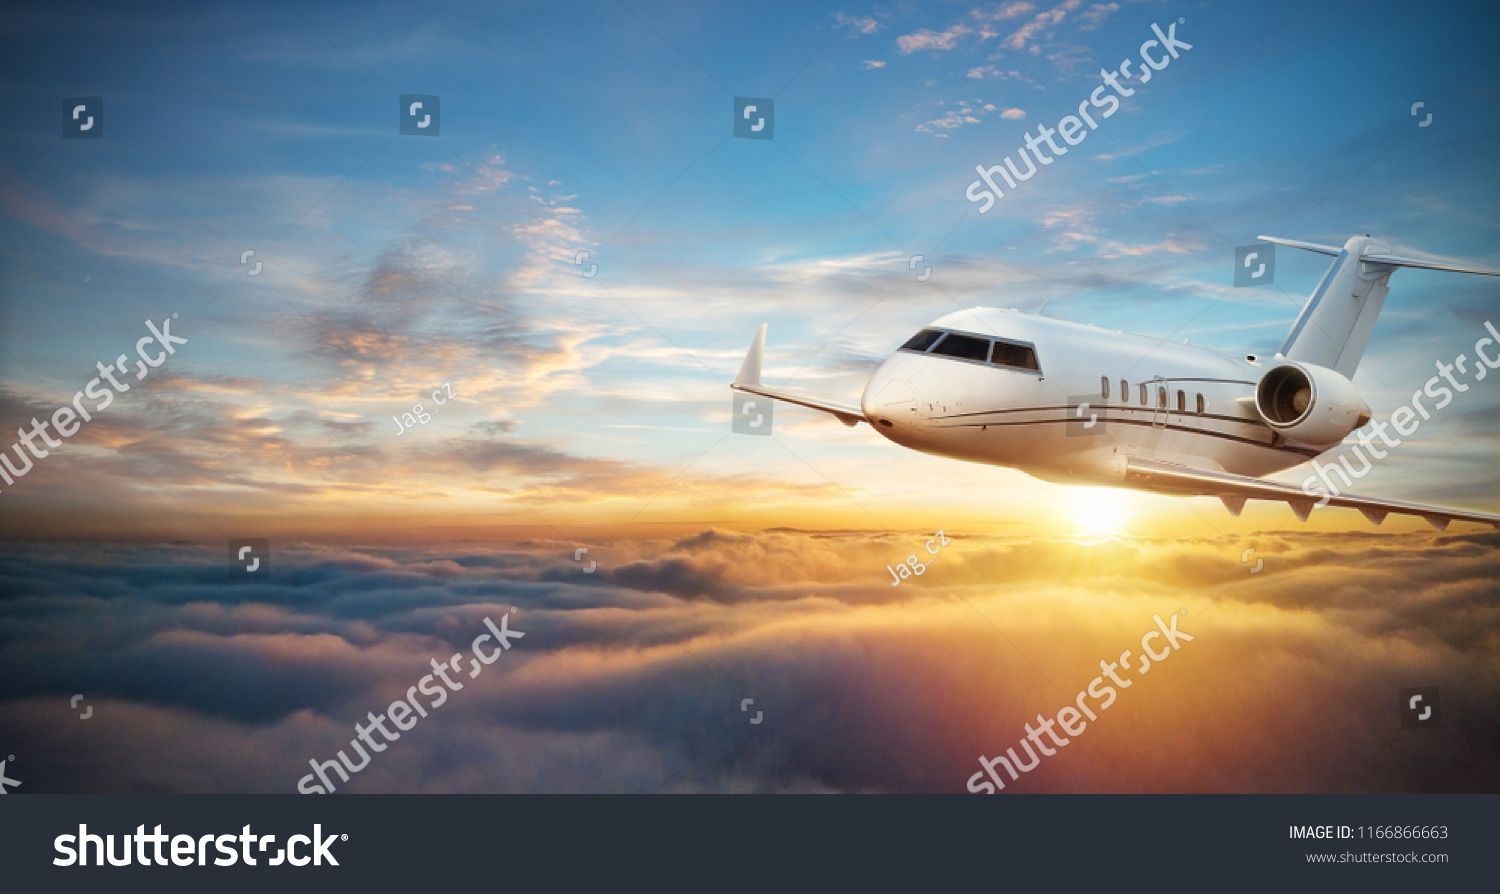 Luxury private jetliner flying above clouds. Modern and fastest mode of transportation, symbol of luxury and business traveling. #Sponsored , #ad, #flying#clouds#Modern#Luxury